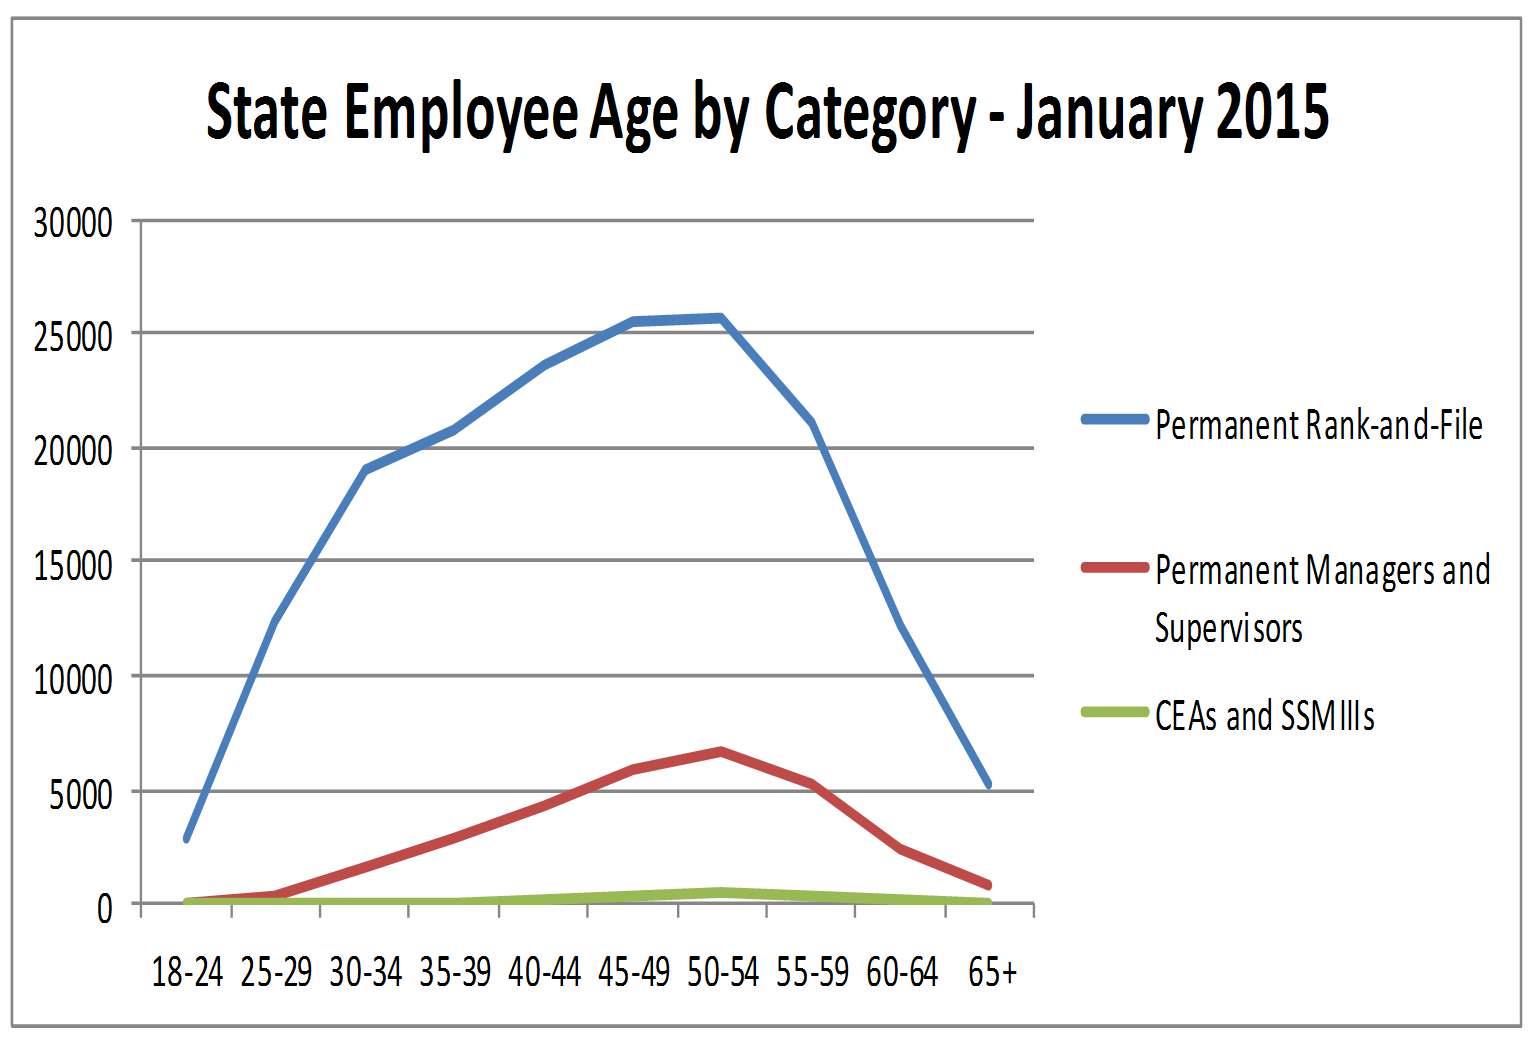 The majority of employees were at or near the age of 50 in every category.